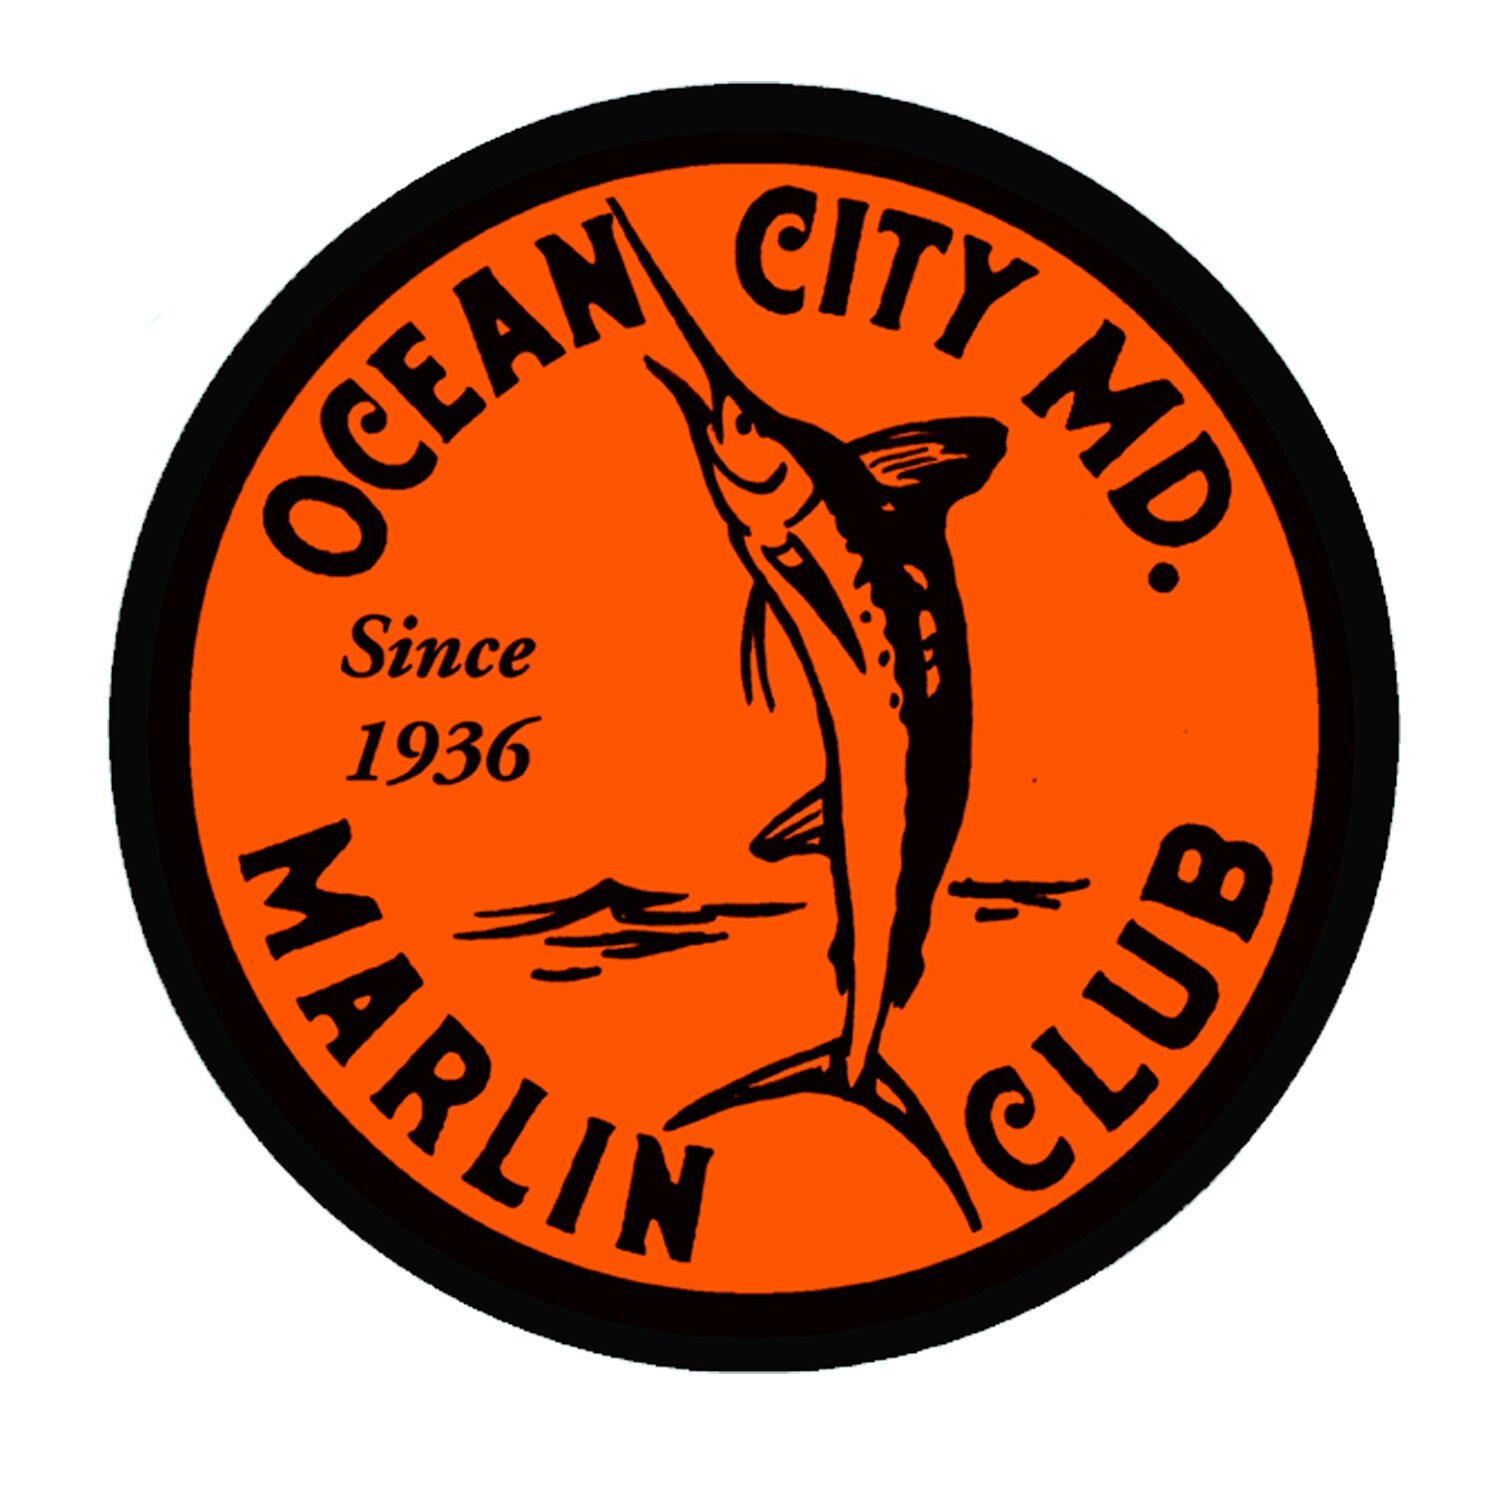 Ocean City Marlin Club Wins Challenge Cup